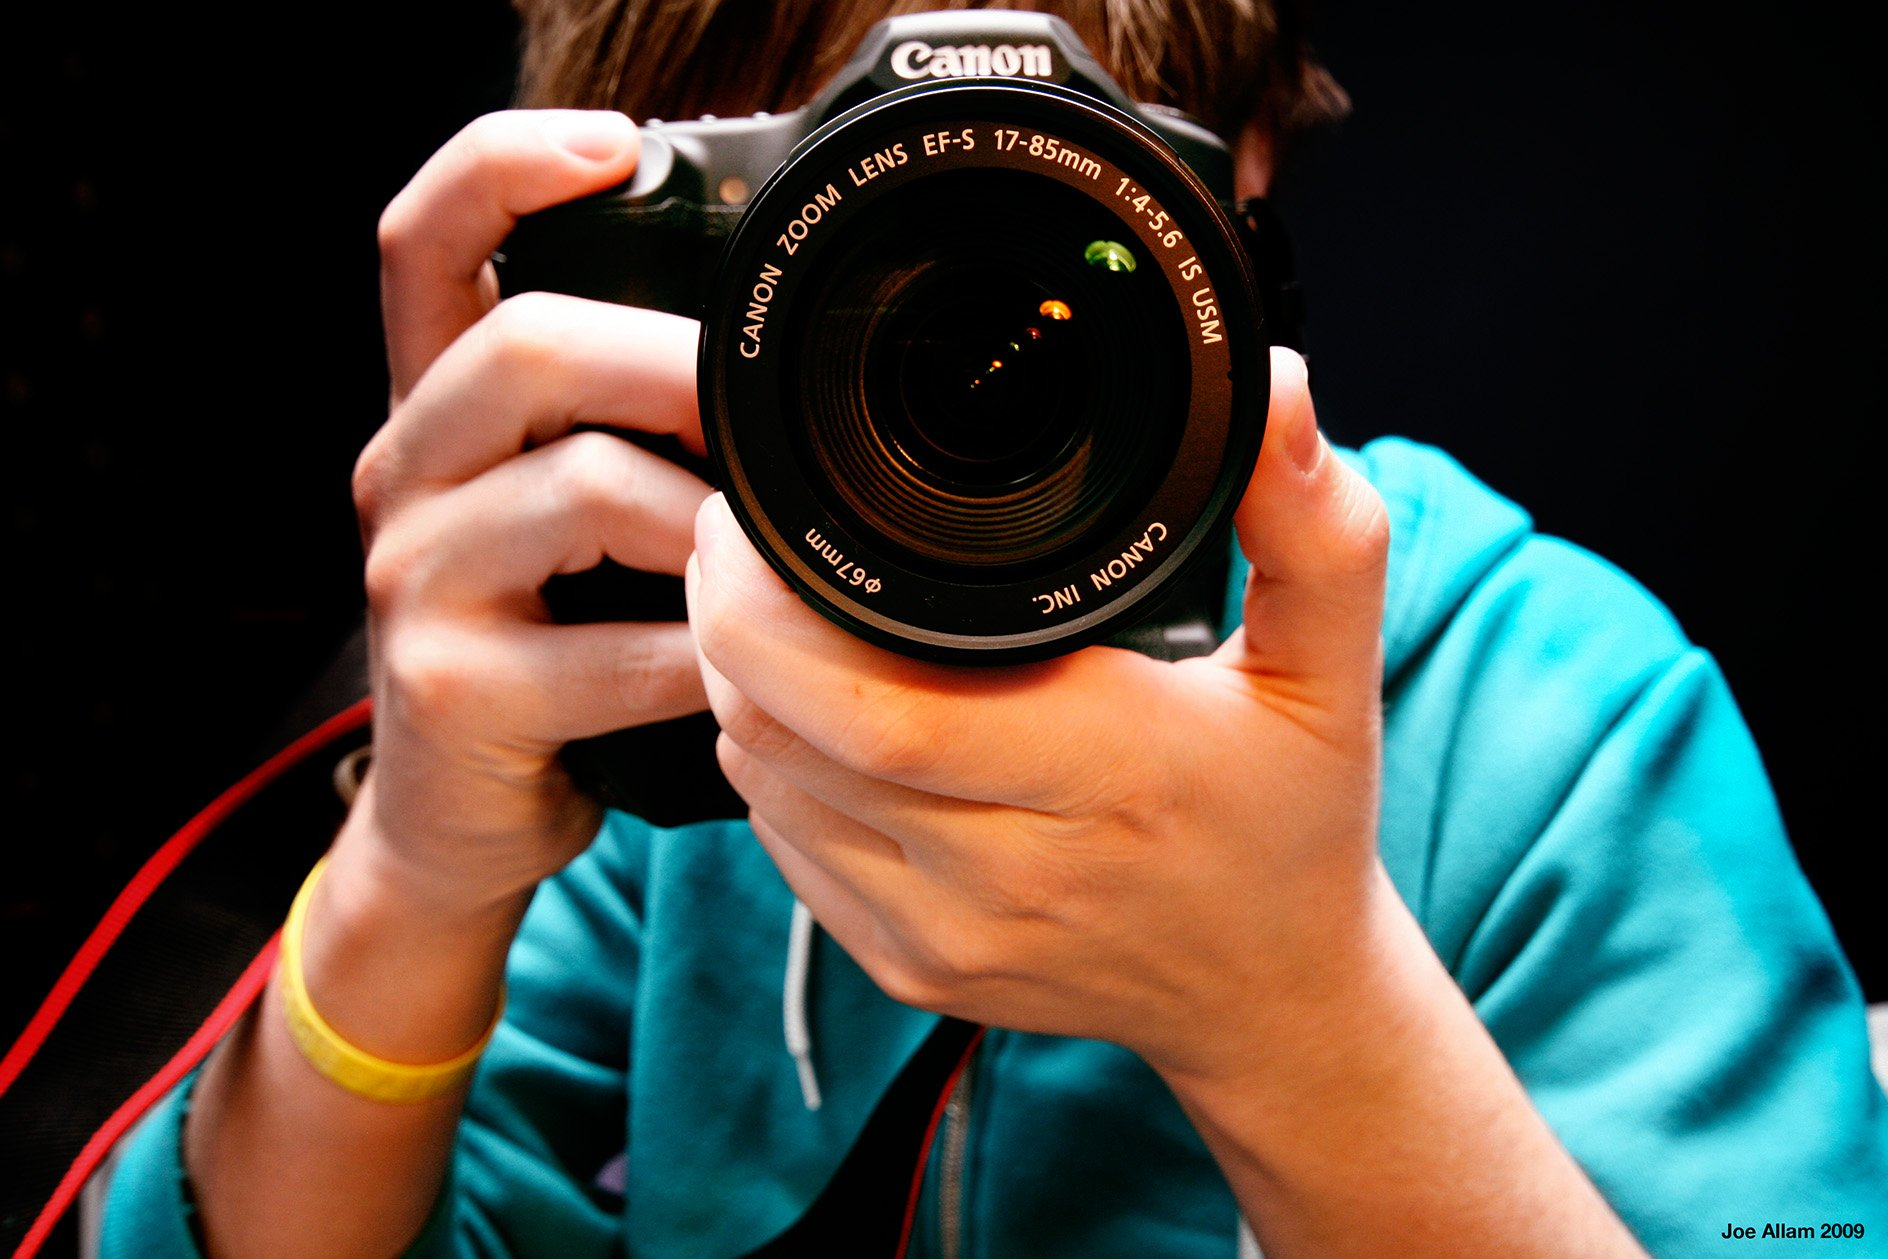 Day 114/365 2009 – New Canon EOS 50D